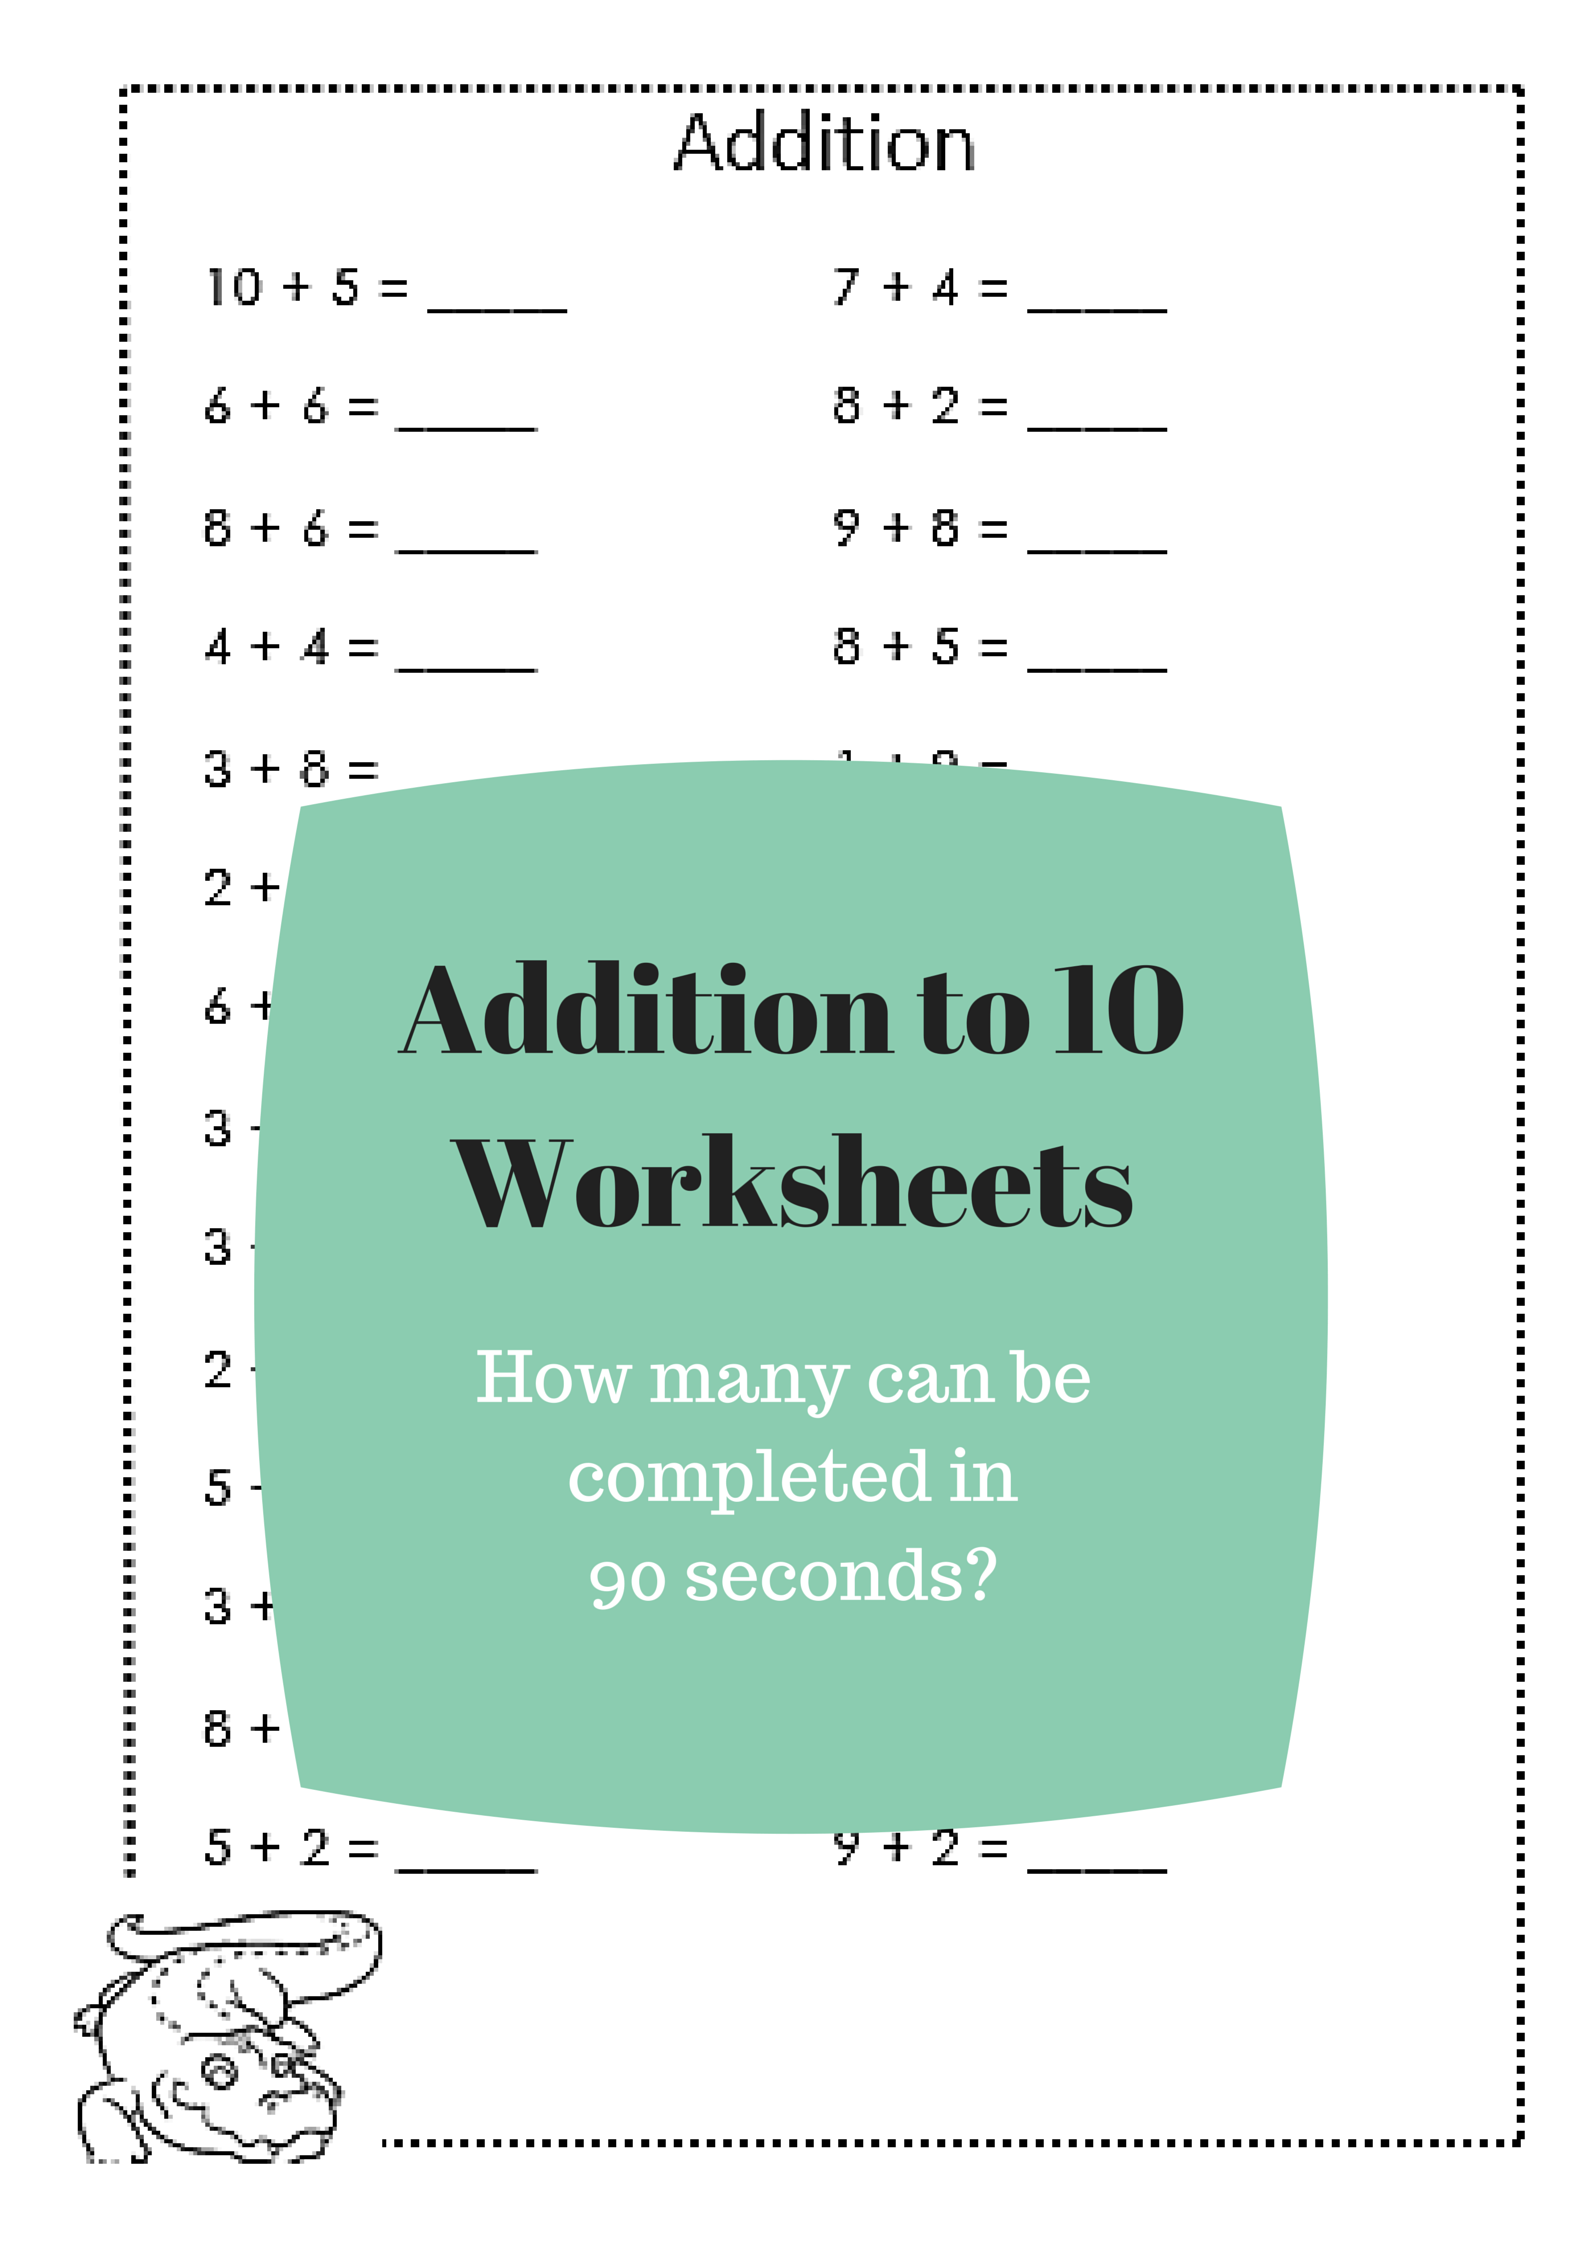 Addition to 10 Worksheets free printables | Mathematics | Pinterest ...